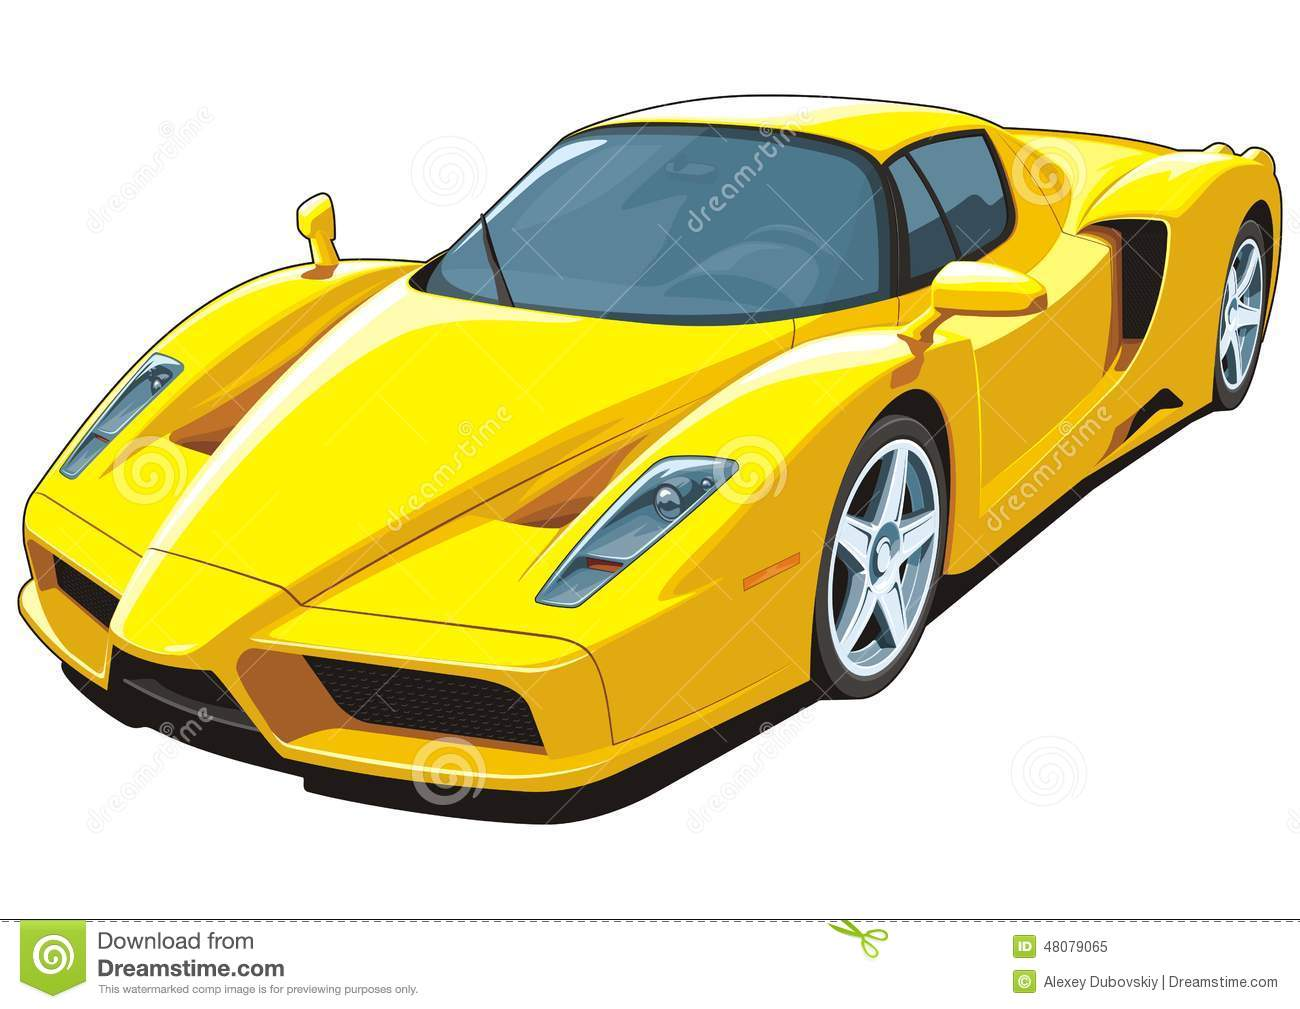 vehicle yellow sports car - photo #31